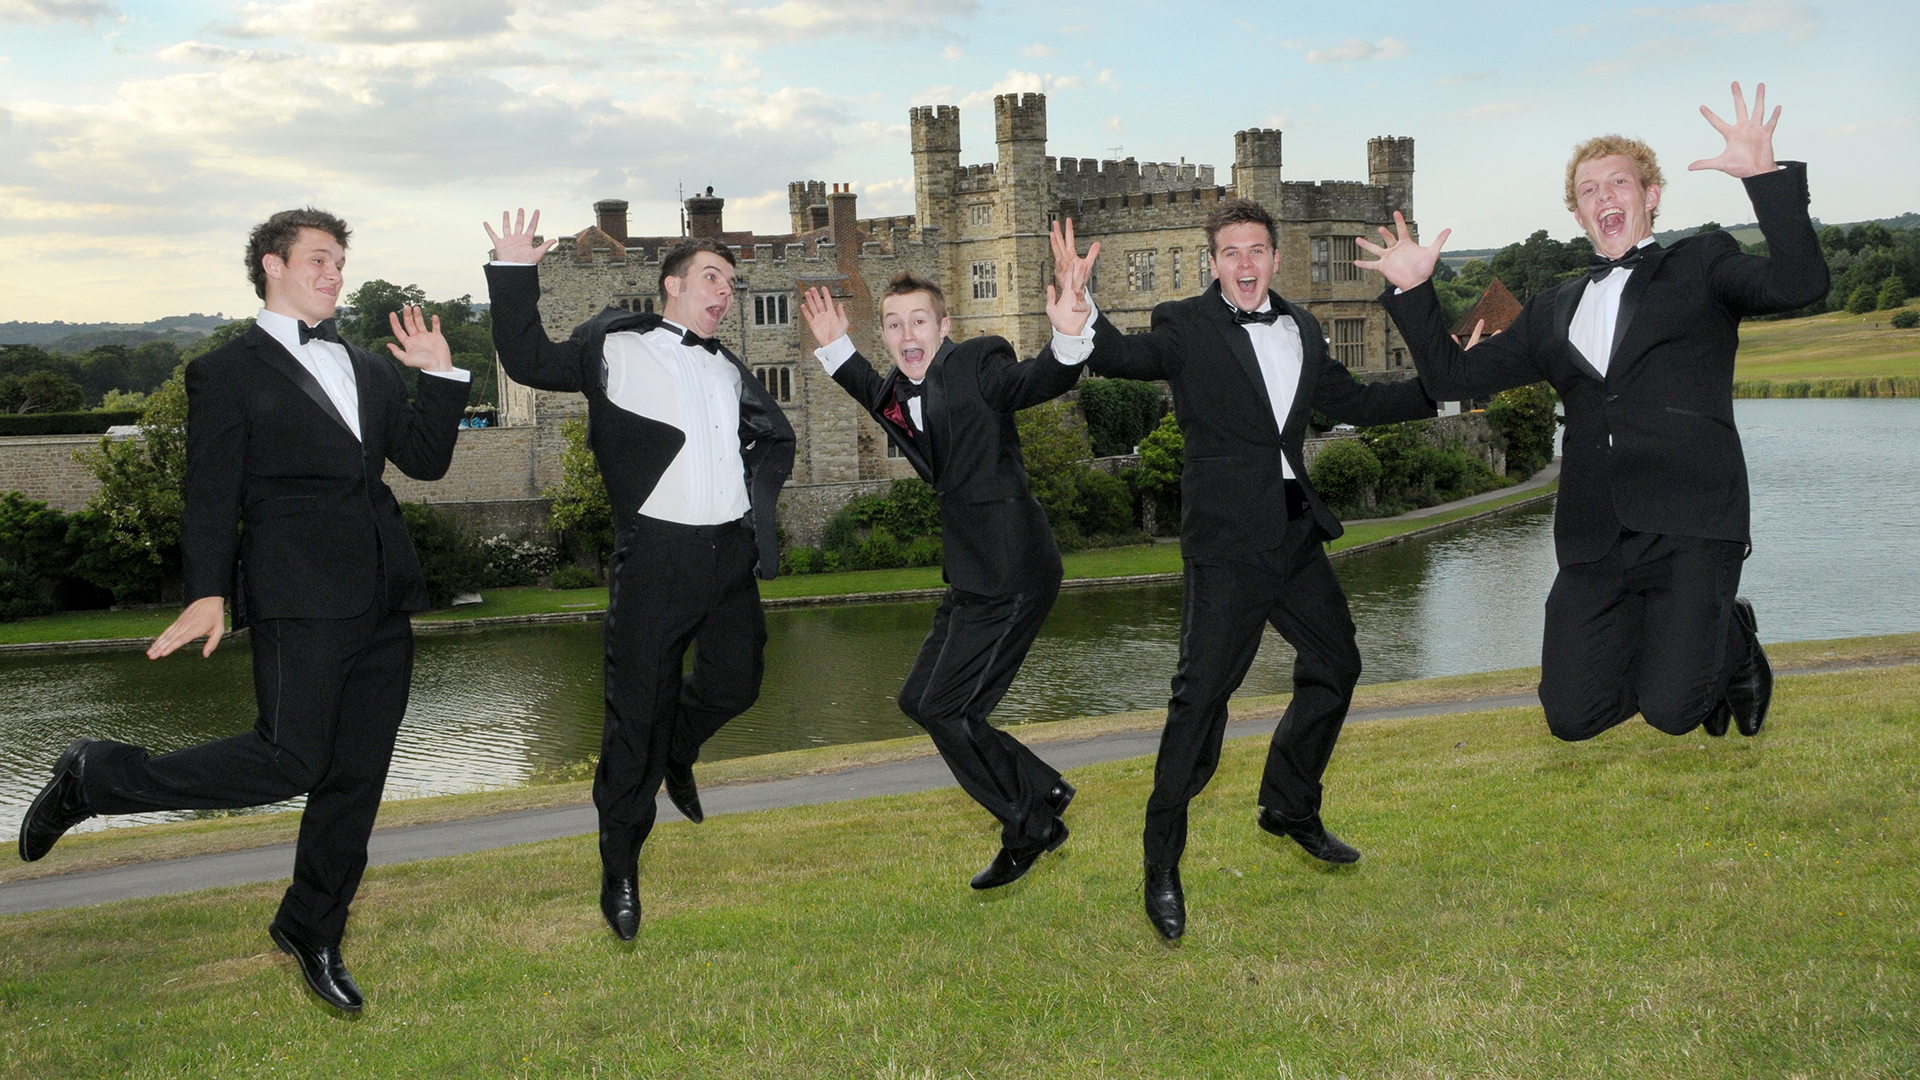 Proms and Event photography in Maidstone Kent